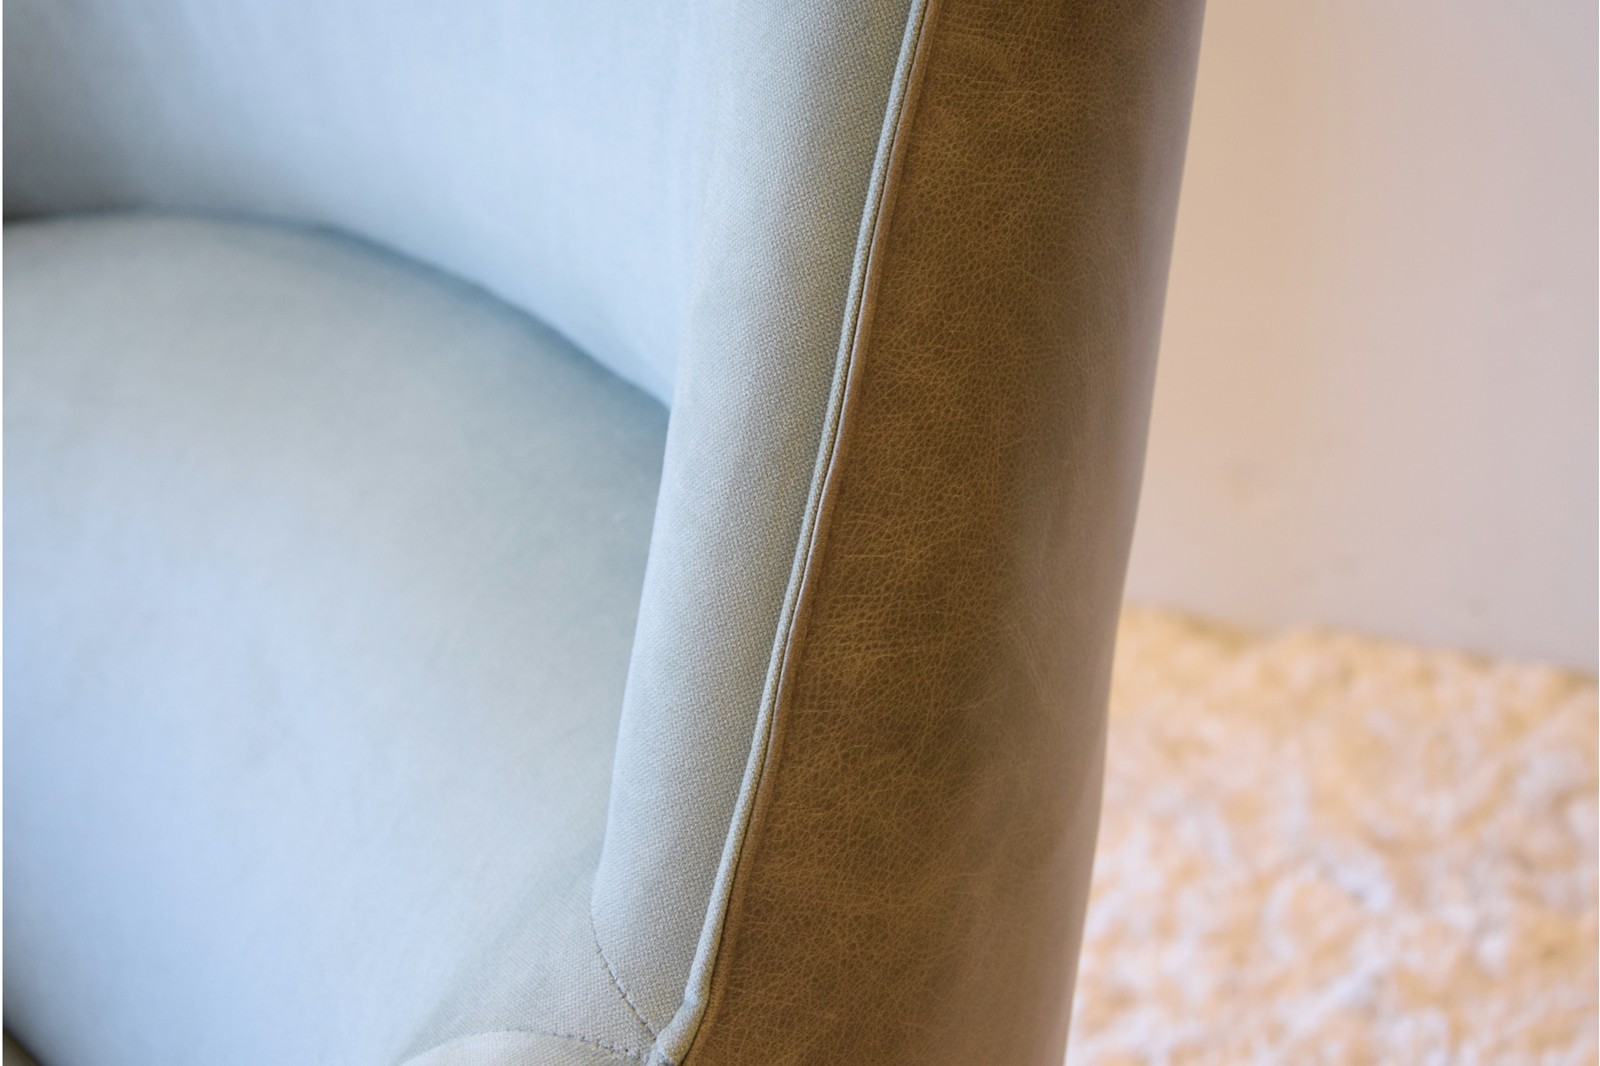 ARMCHAIR.GREEN-BLUE LEATHER ANDFABRIC COMBINATION